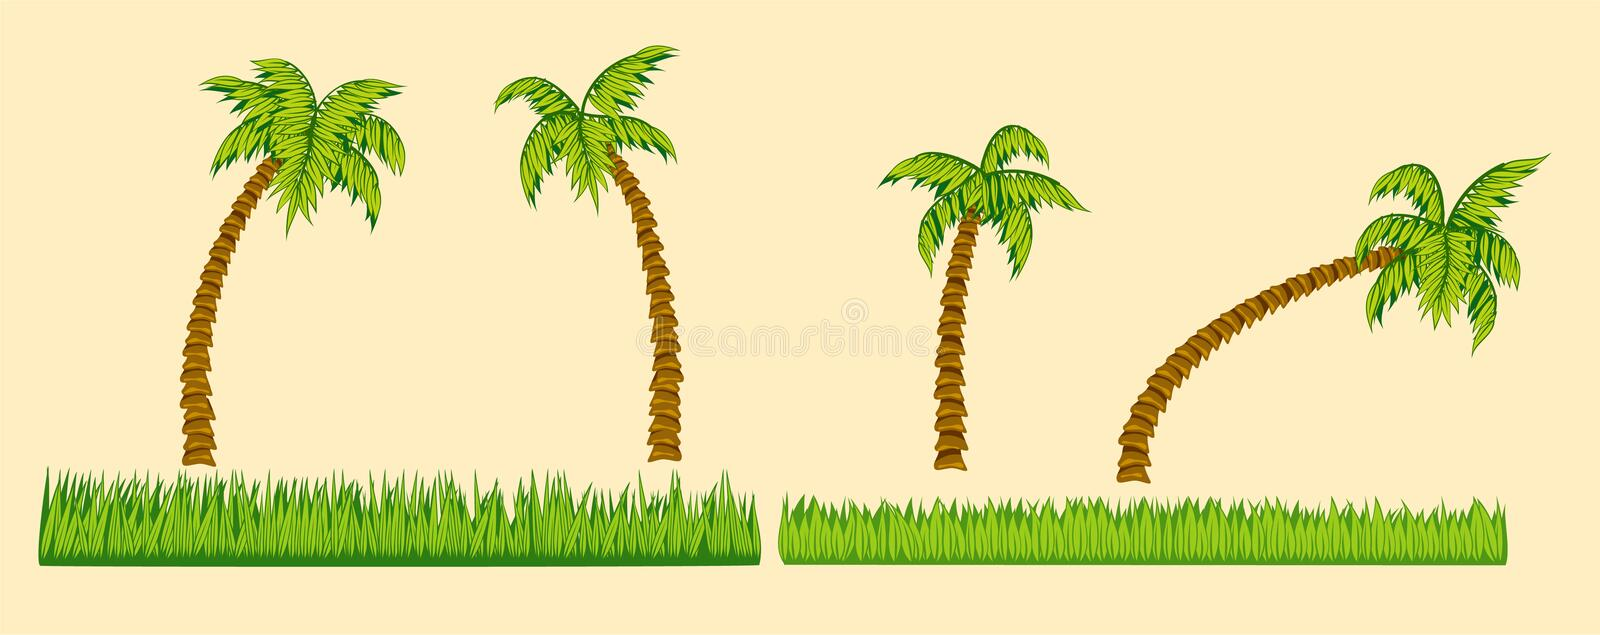 Download Set Of Palm Trees And Grass Stock Vector - Image: 41635664